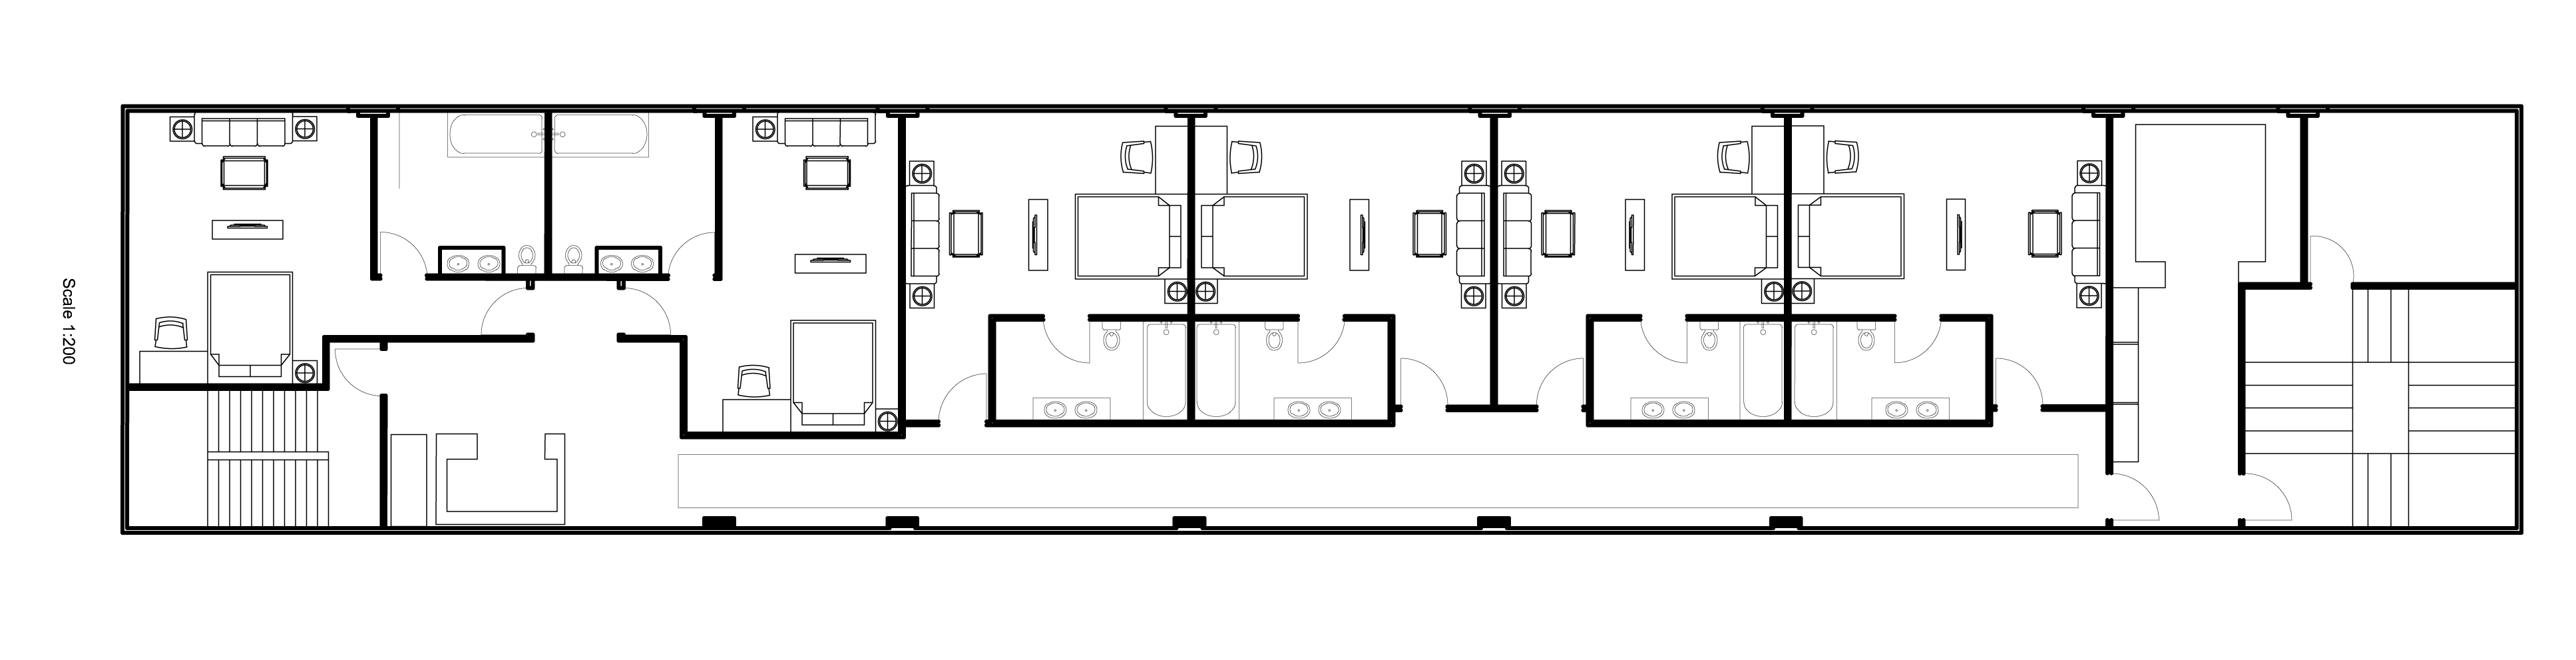 File floor plan of hotel rooms jpg wikimedia commons Room floor design